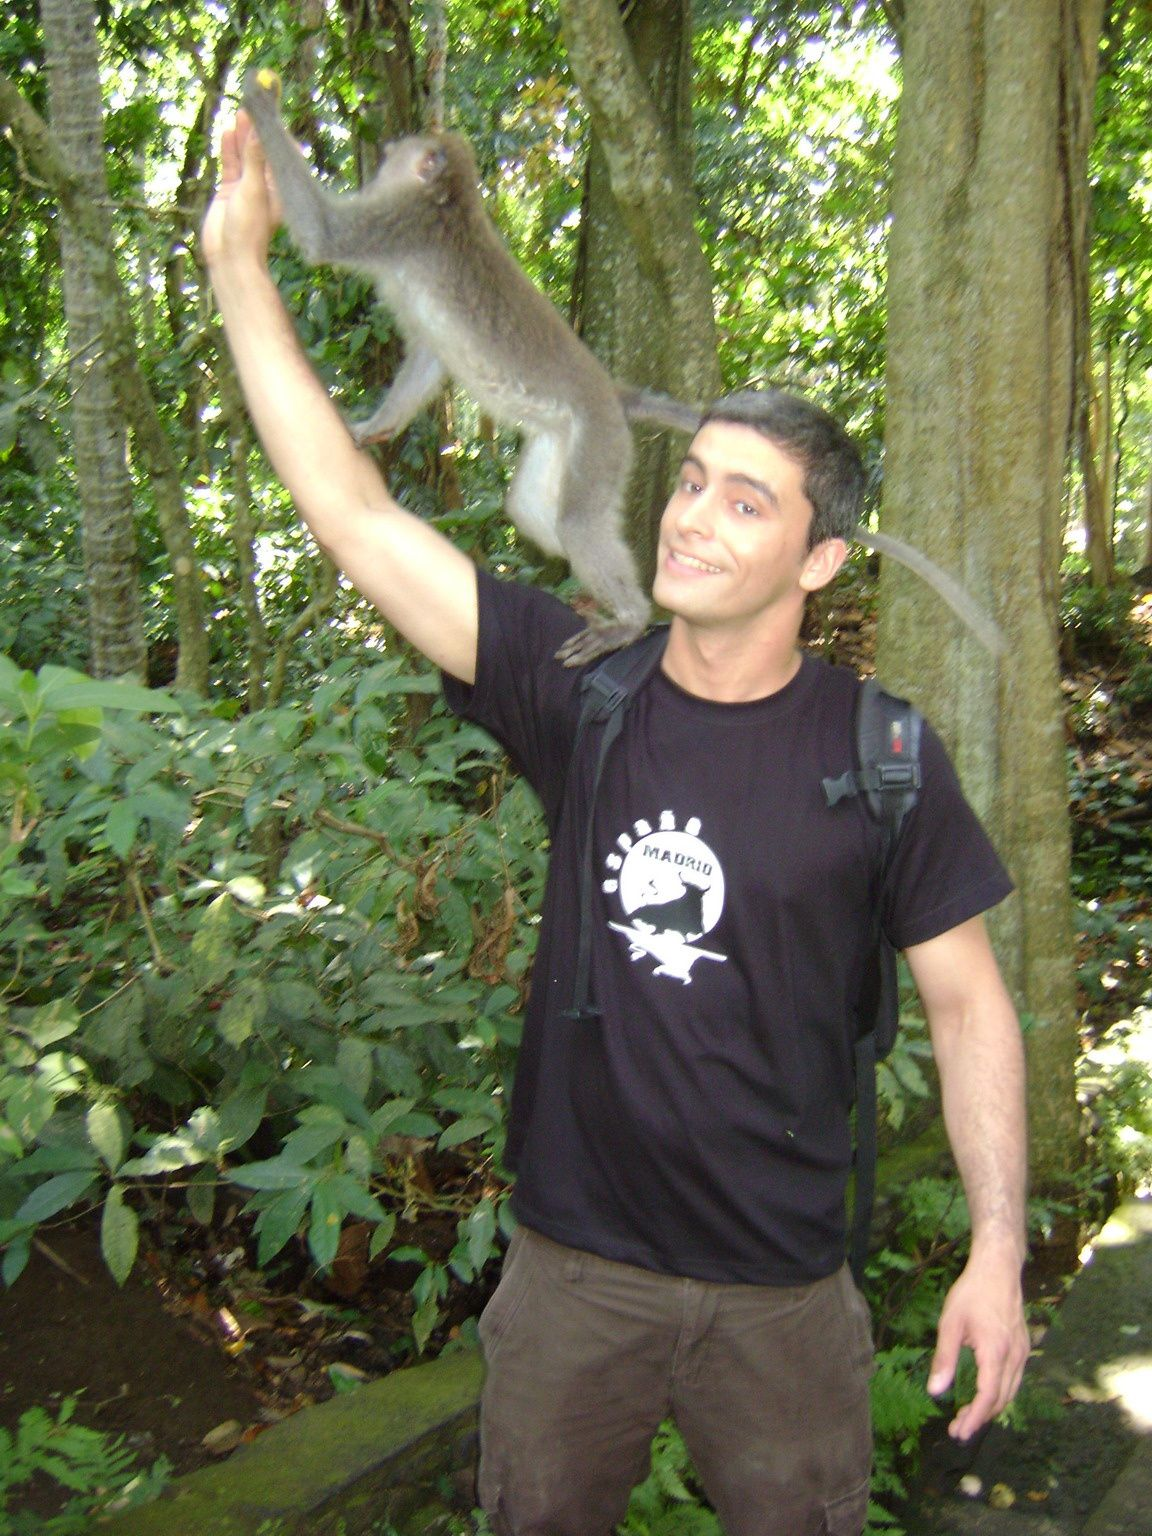 Me and the monkey